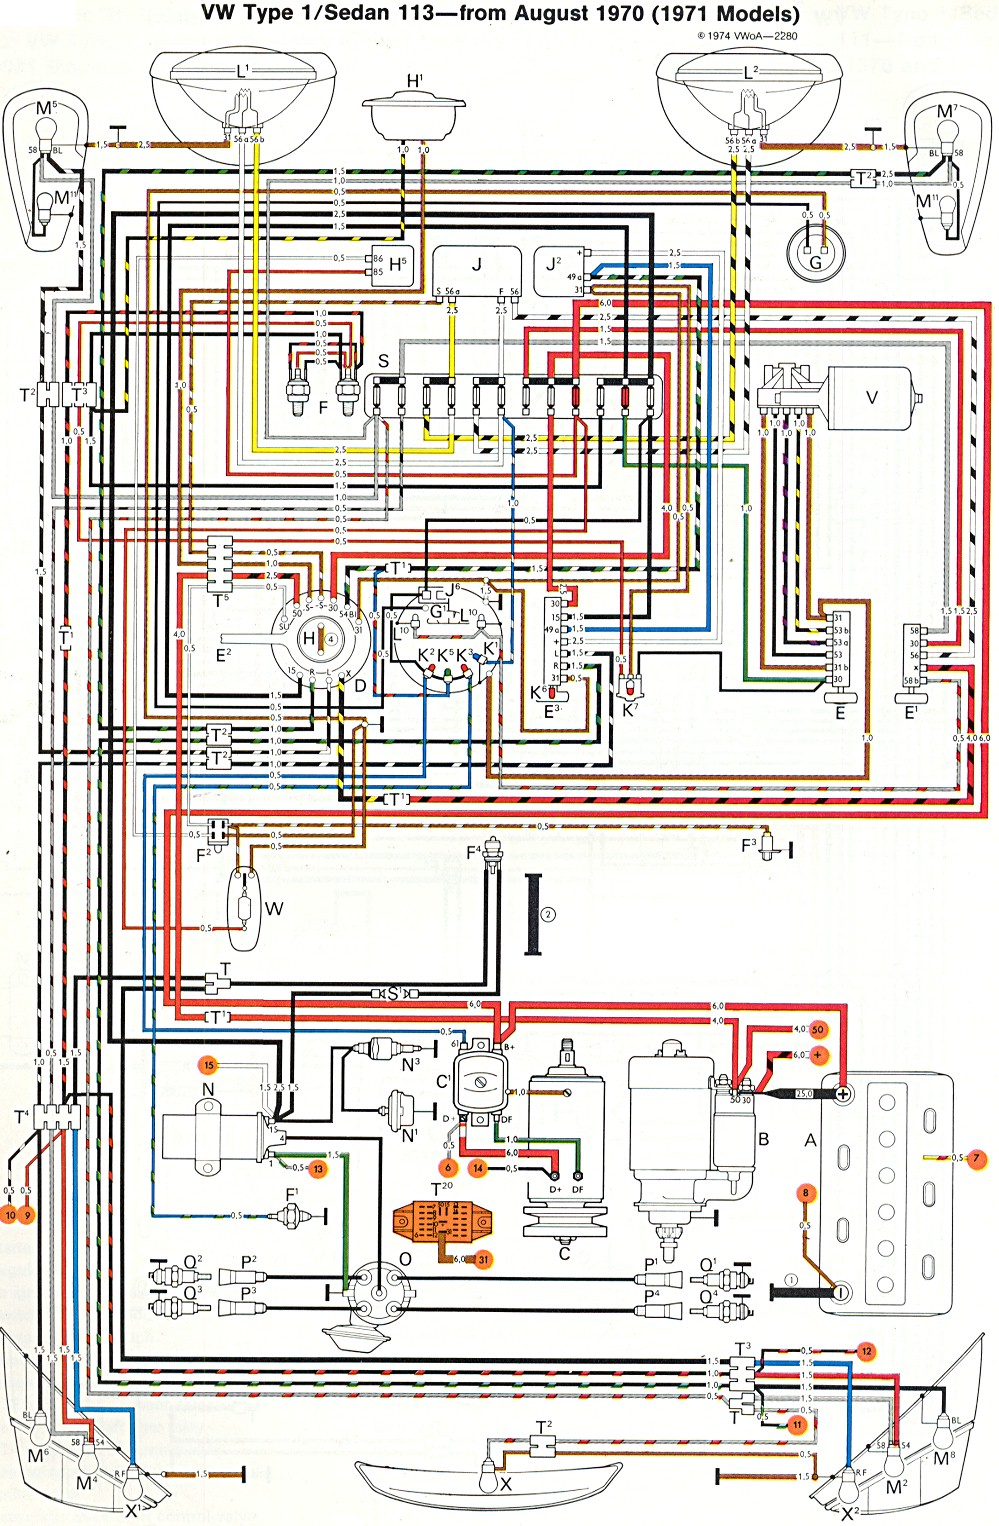 bug_super_71 1971 super beetle wiring diagram thegoldenbug com vw bug wiring diagram at cos-gaming.co